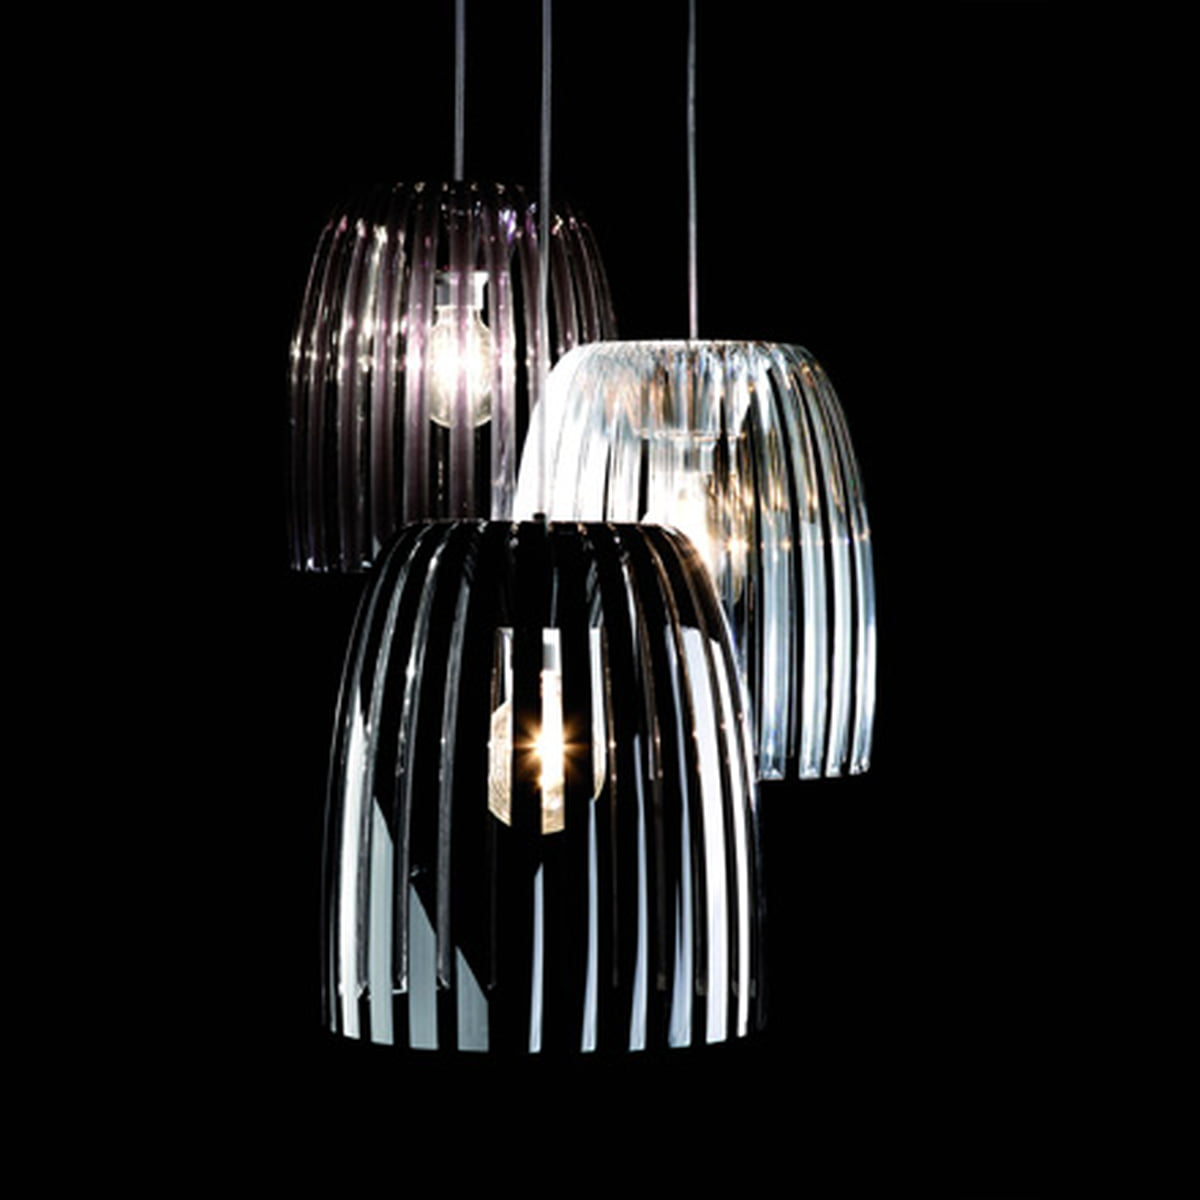 Josephine m pendant lamp koziol shop for Suspension luminaire original